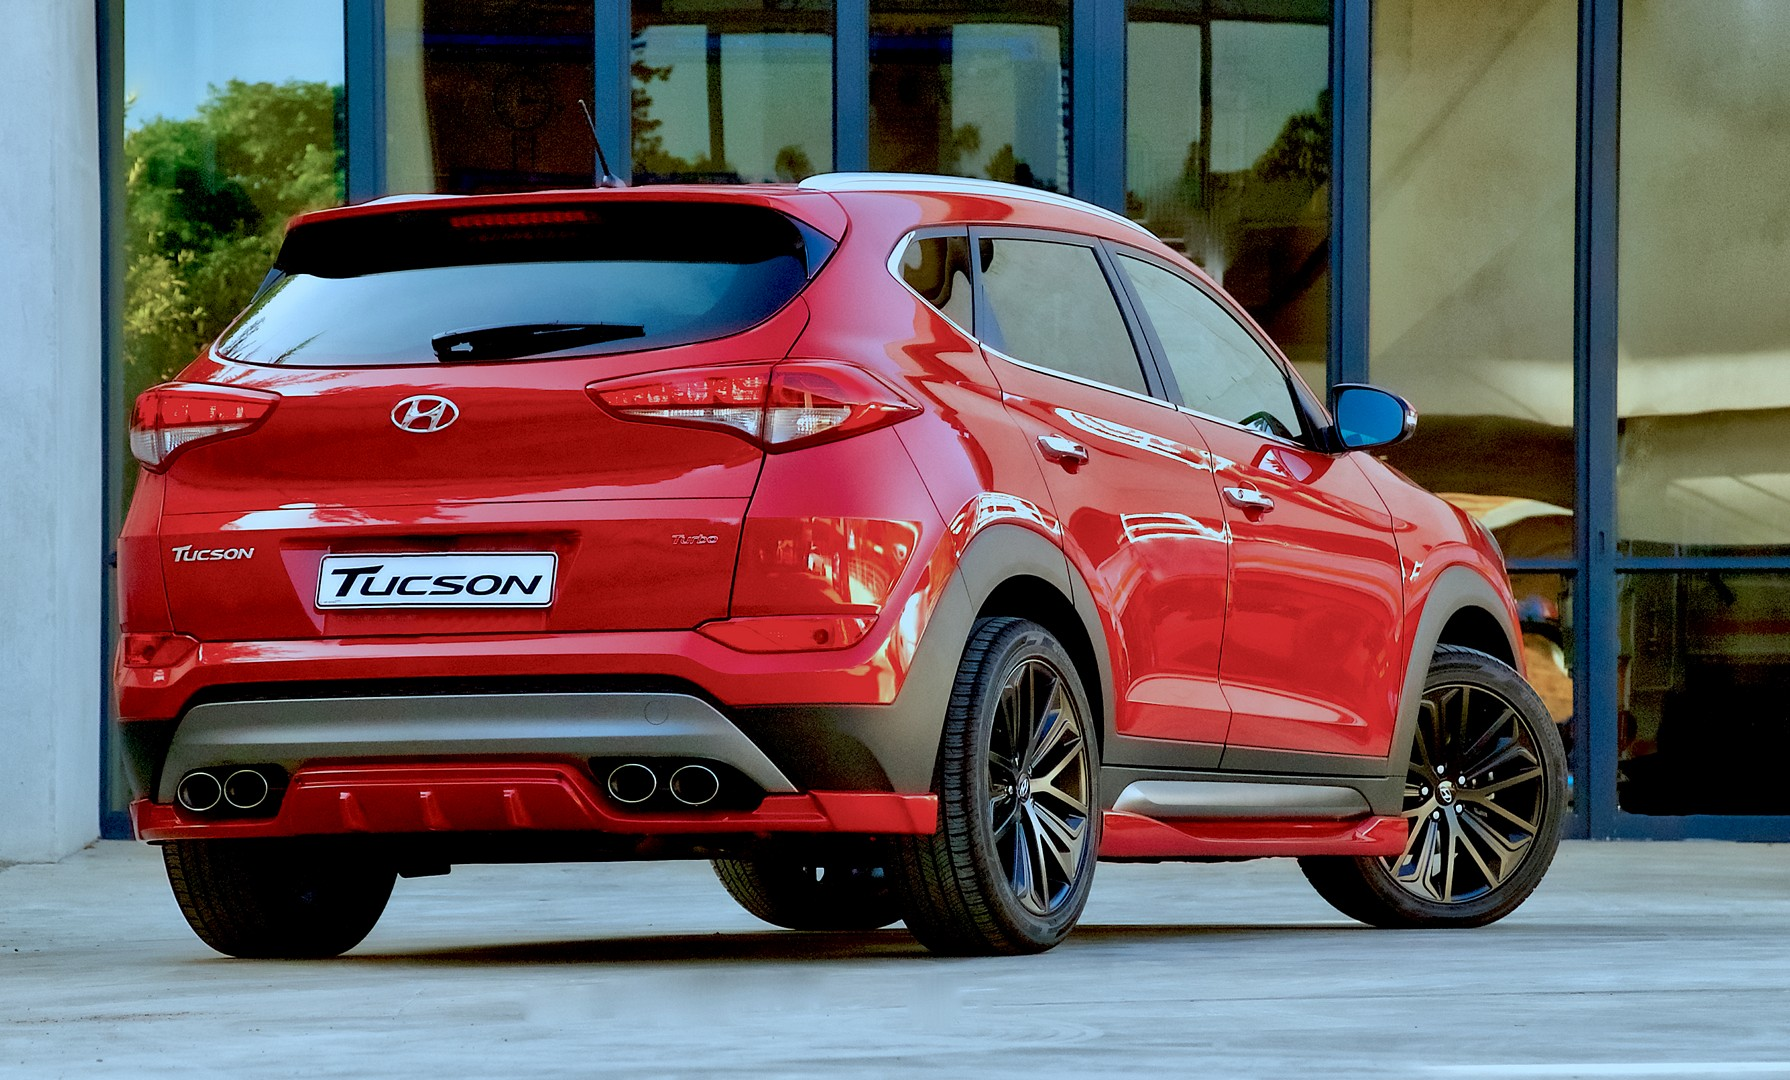 Hyundai Tucson Sport Has Body Kit Quad Pipes And 204 Hp 1